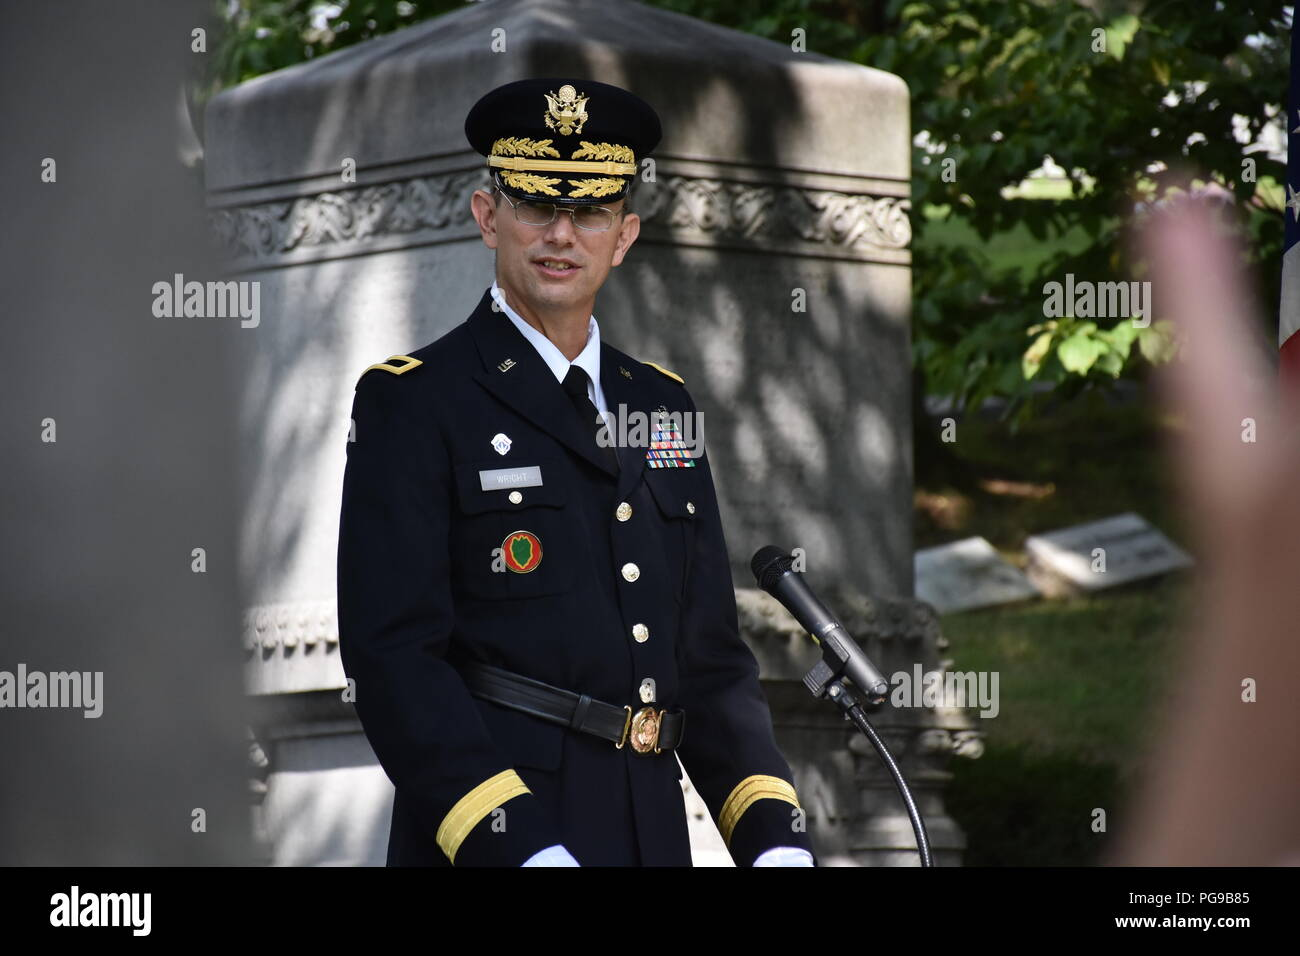 Brigadier Gen. Tony L. Wright, 88th Readiness Division deputy commanding general, speaks during at a wreath laying ceremony for President Benjamin Harrison at Crown Hill Cemetery, in Indianapolis, on Aug. 18, to commemorate the Hoosier President's 185th birthday. (US Army photo by Catherine Carroll) Stock Photo